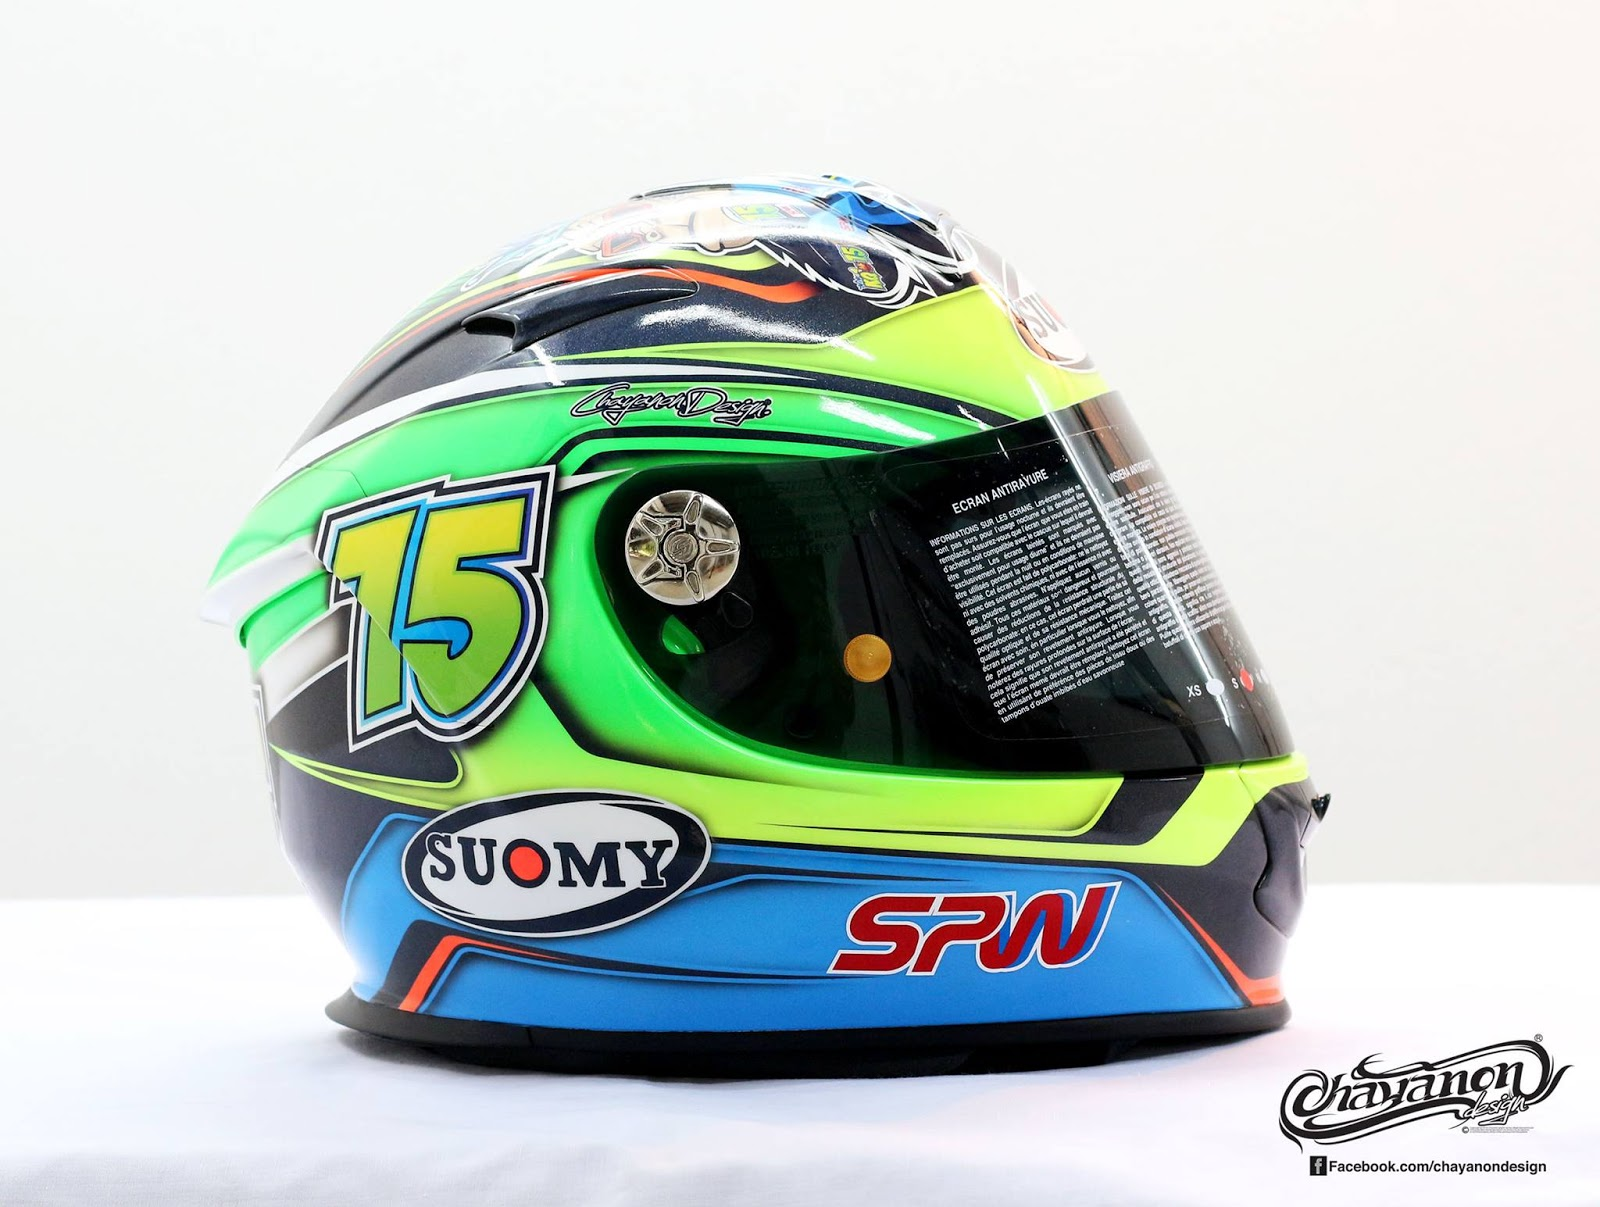 Helm 37 suomy sr sport kingkong concept 2015 by for Helm design